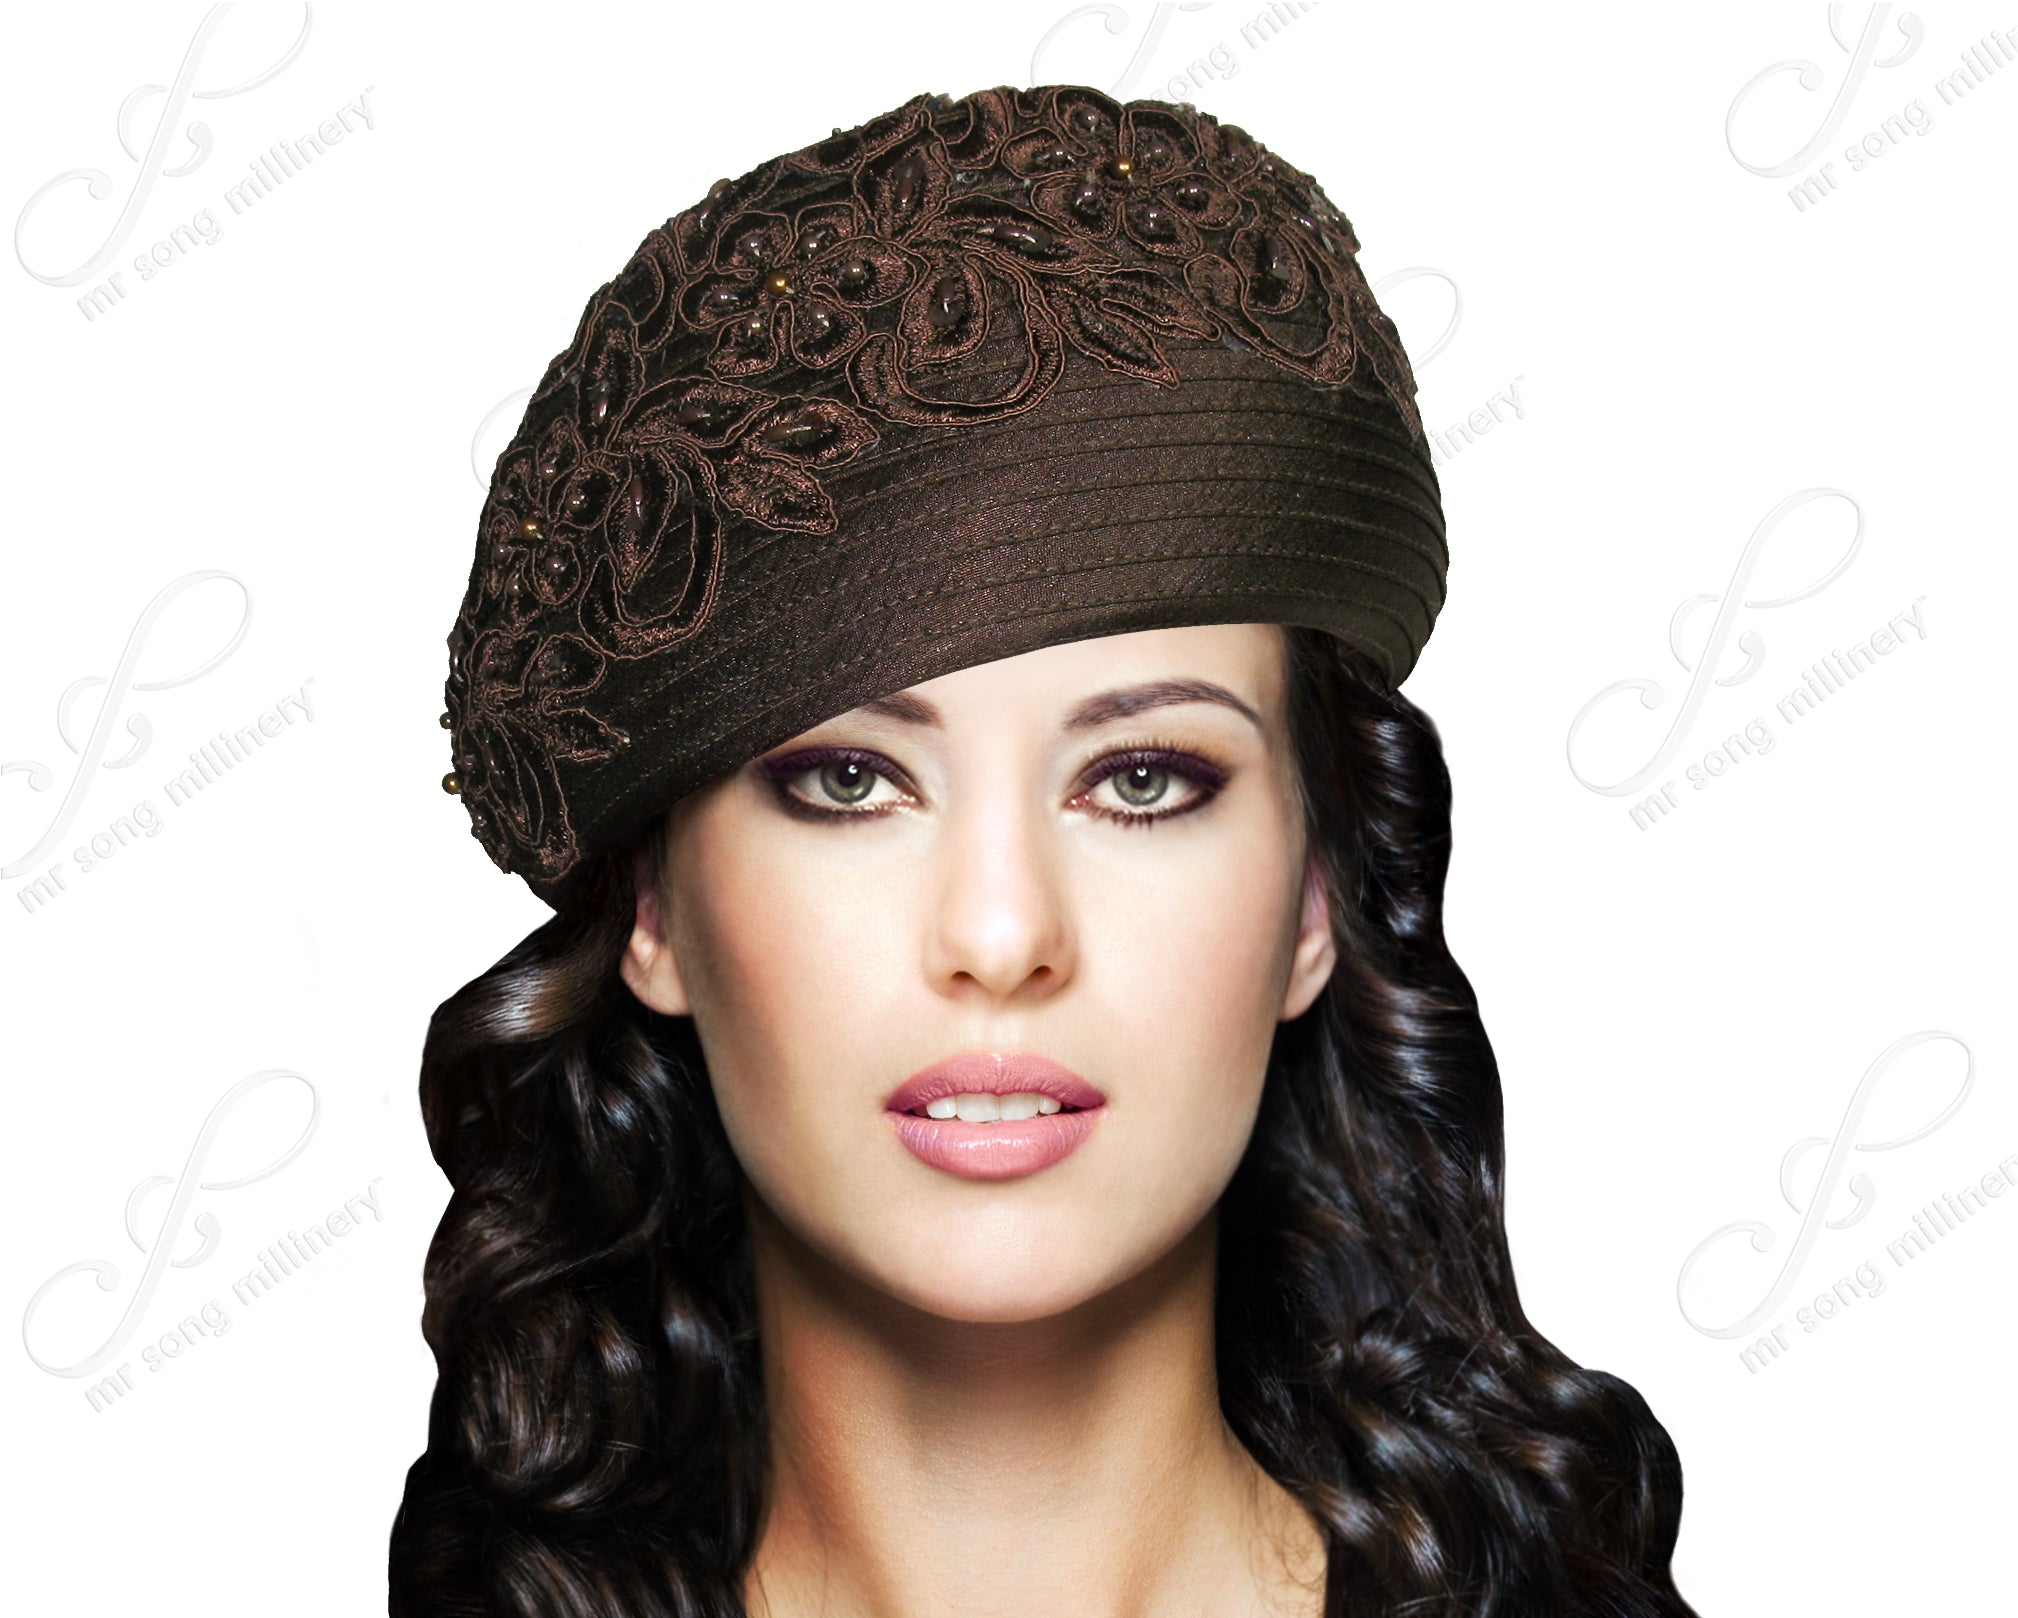 Mr. Song Millinery Beret Cloche Hat With Premium Lace - Assorted Colors